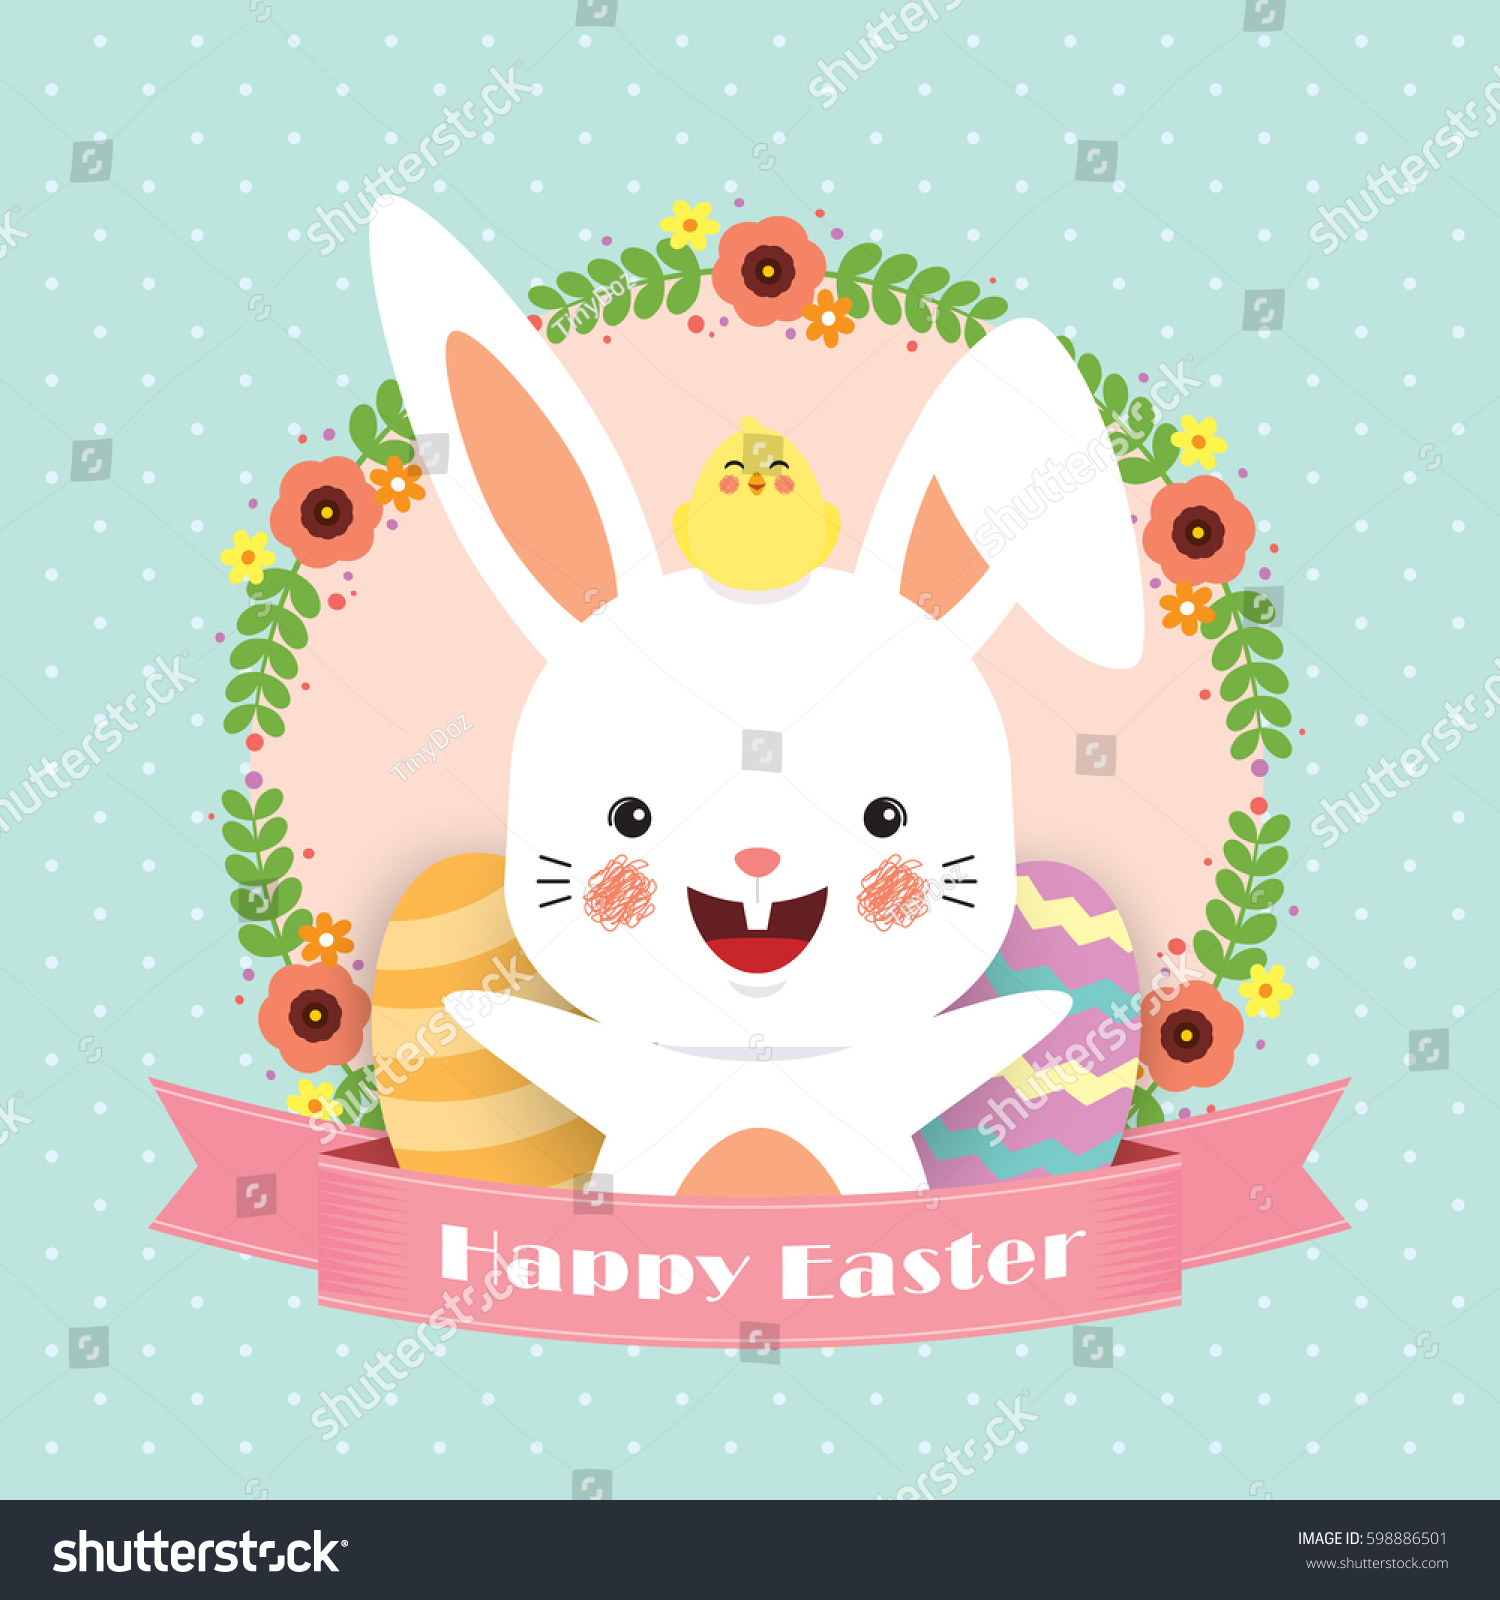 Easter Greeting Card Template Design Cute Stock Vector 598886501